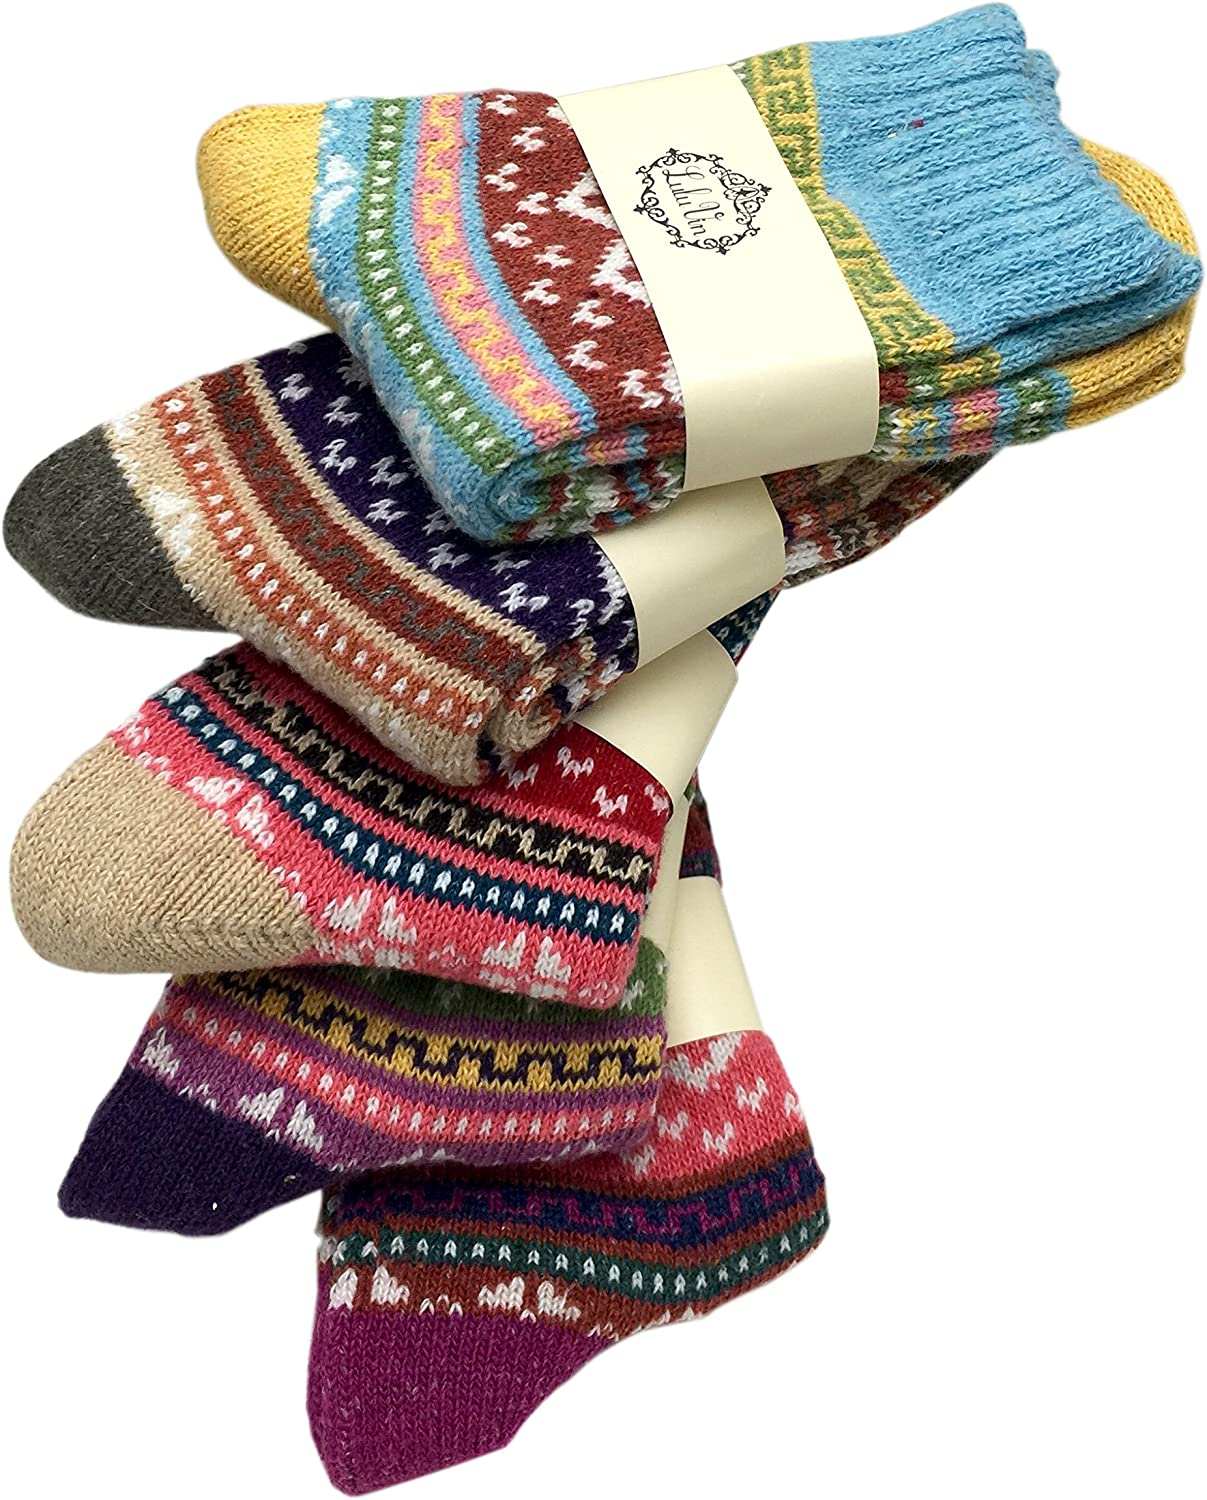 Women's Warm Winter colorful Crew Socks (5 Pairs)